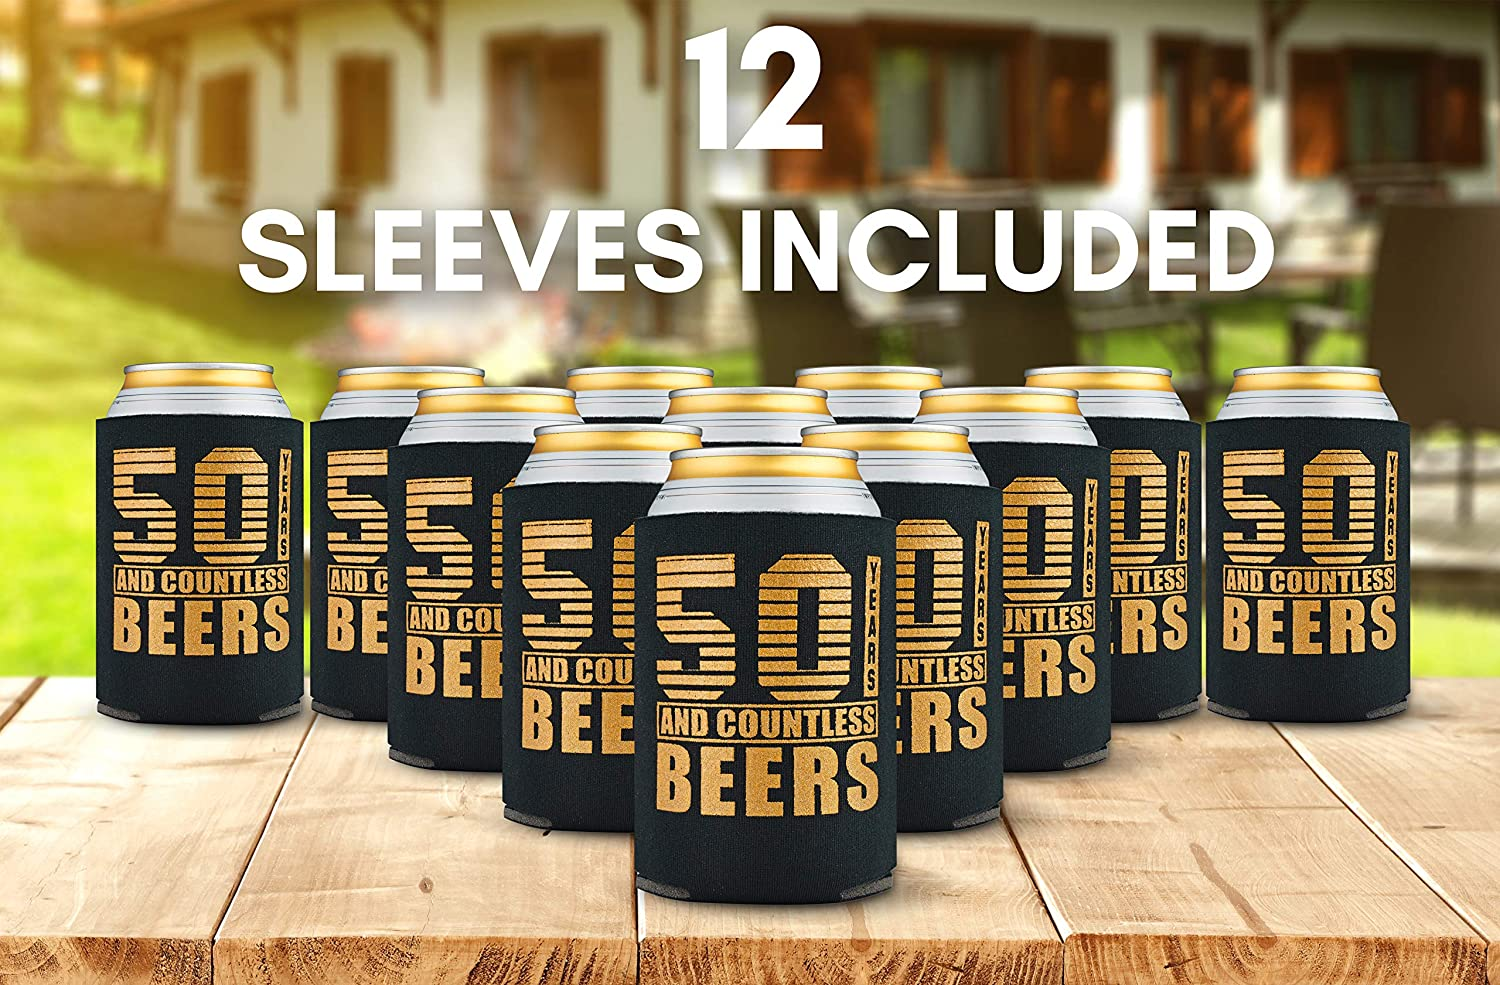 50th Birthday Decorations for Men 12-Pack Can Coolers 50th Birthday Gift Ideas Beer Sleeve 12 Beer Cooler Insulated Sleeves 50th Birthday Gifts Men or for Women Black with Gold Lettering